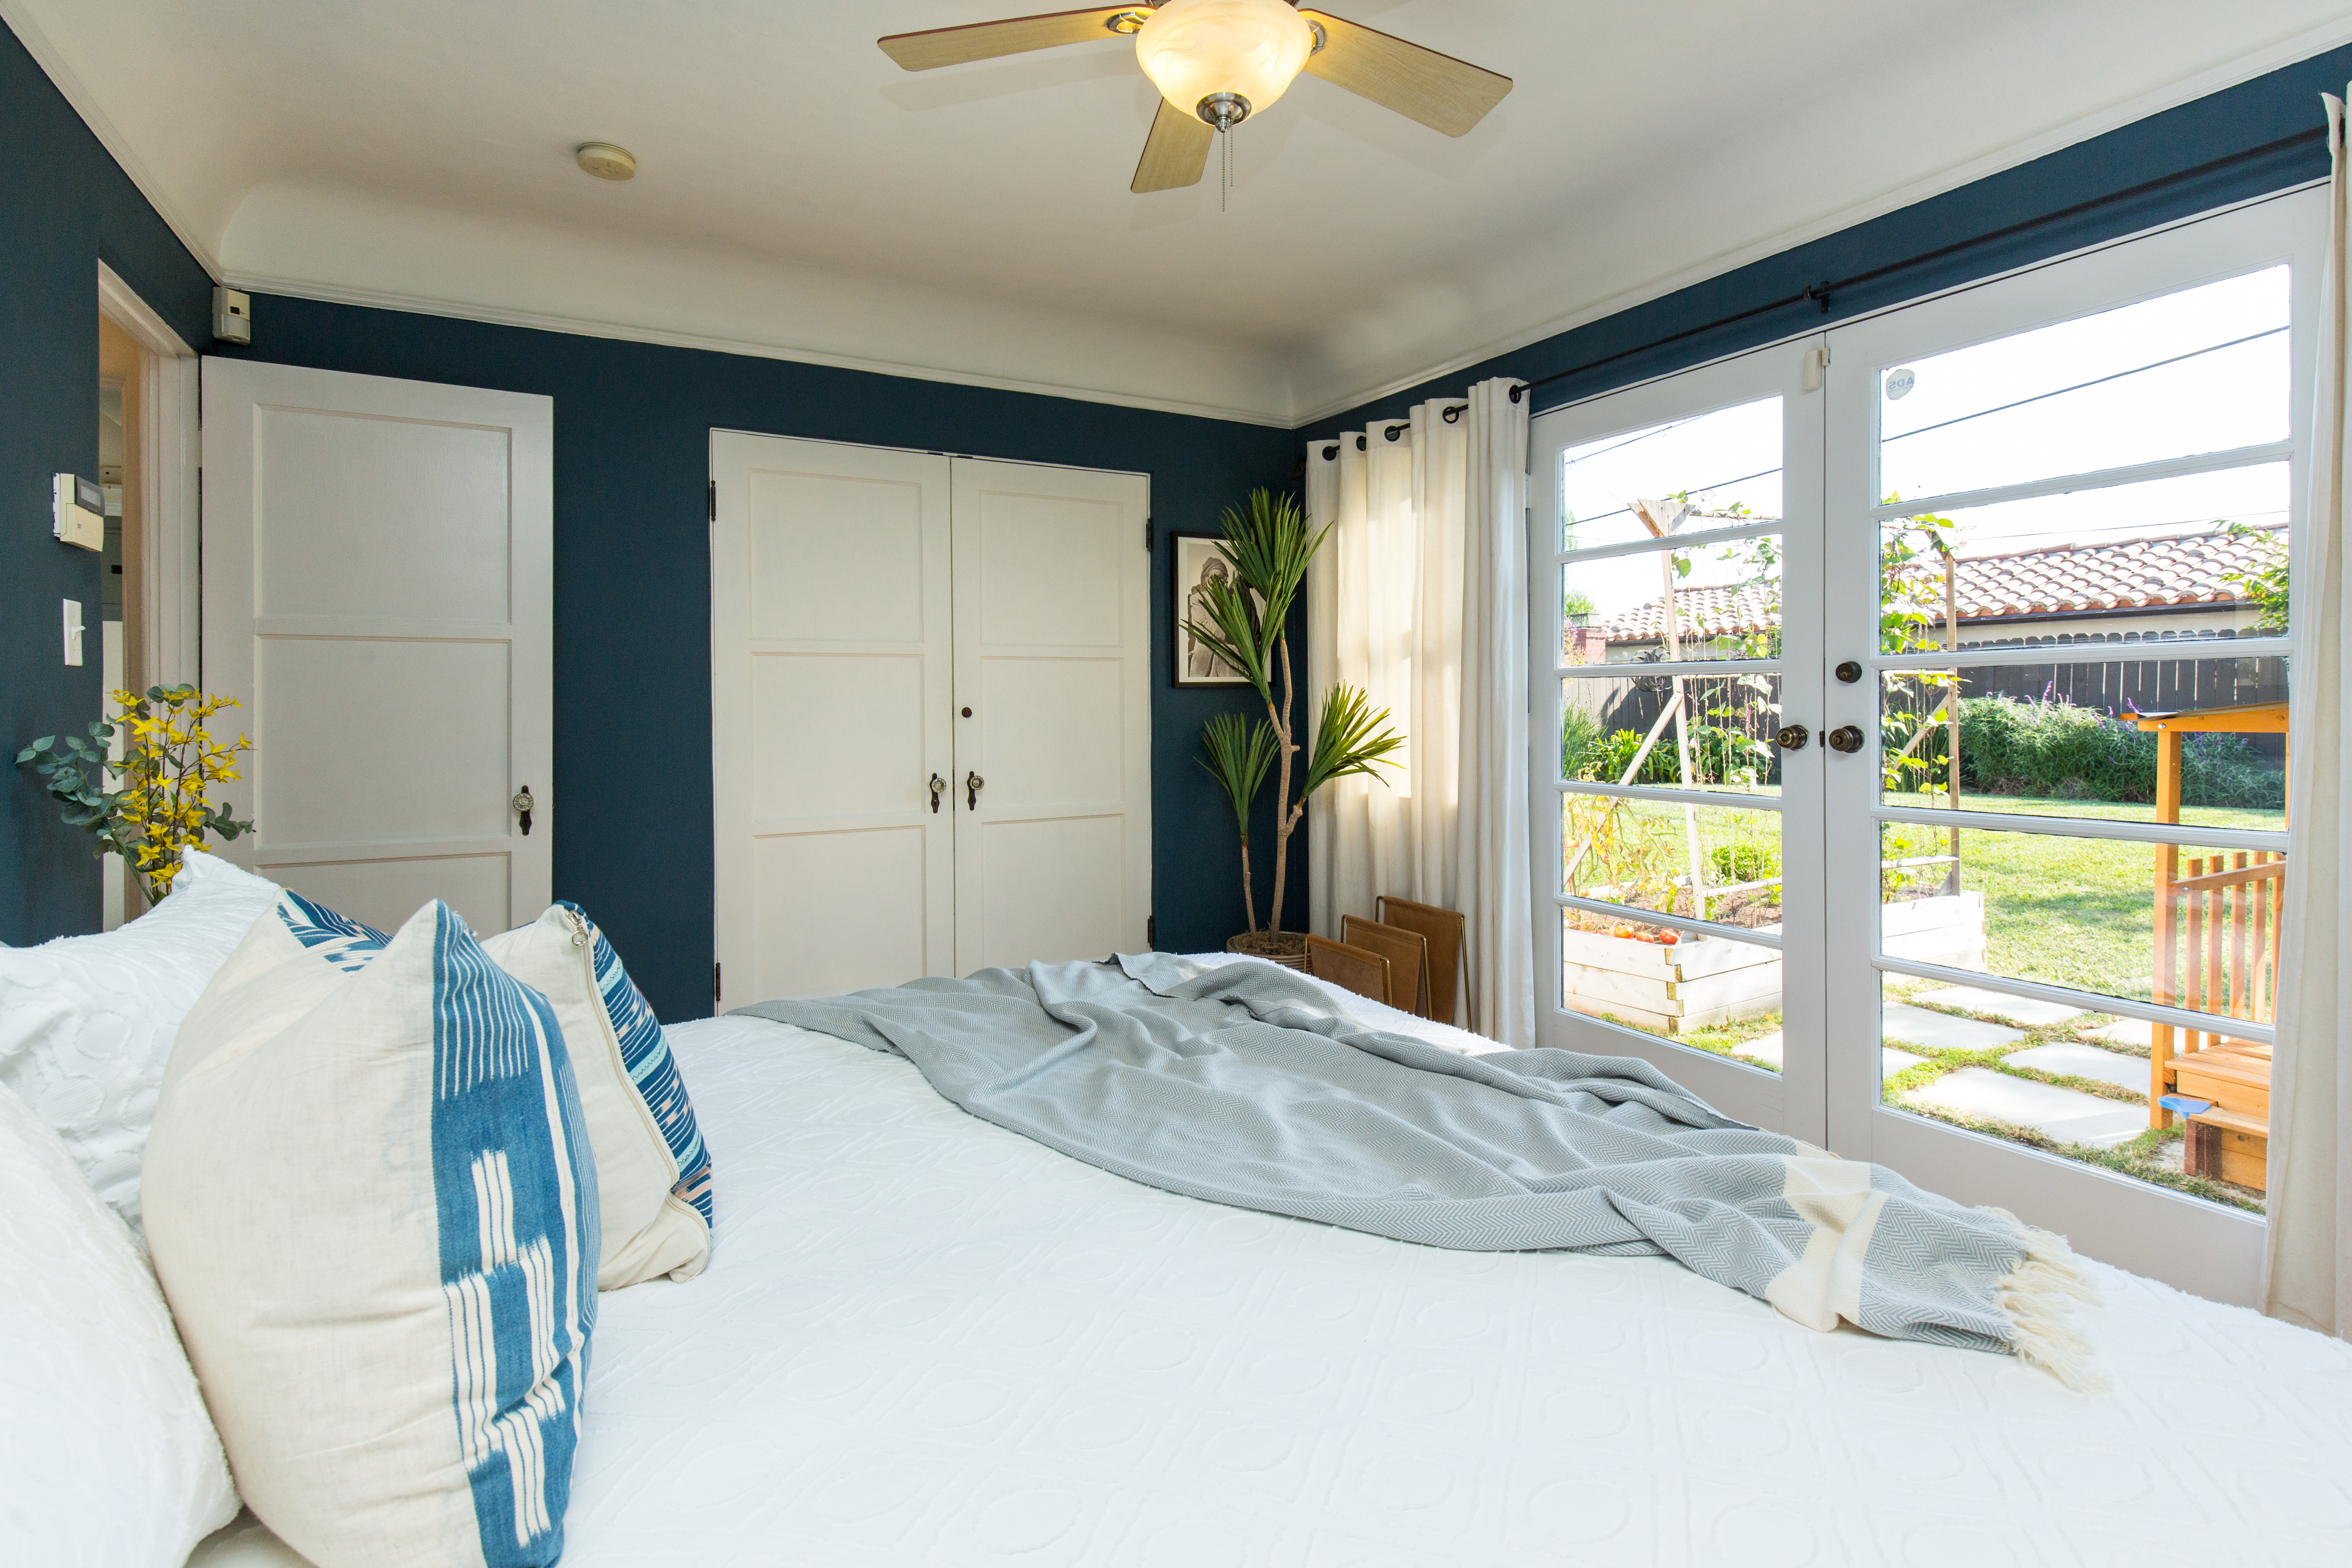 pleasant little spanish style in palms asks 1 05m curbed la bedroom with door to backyard